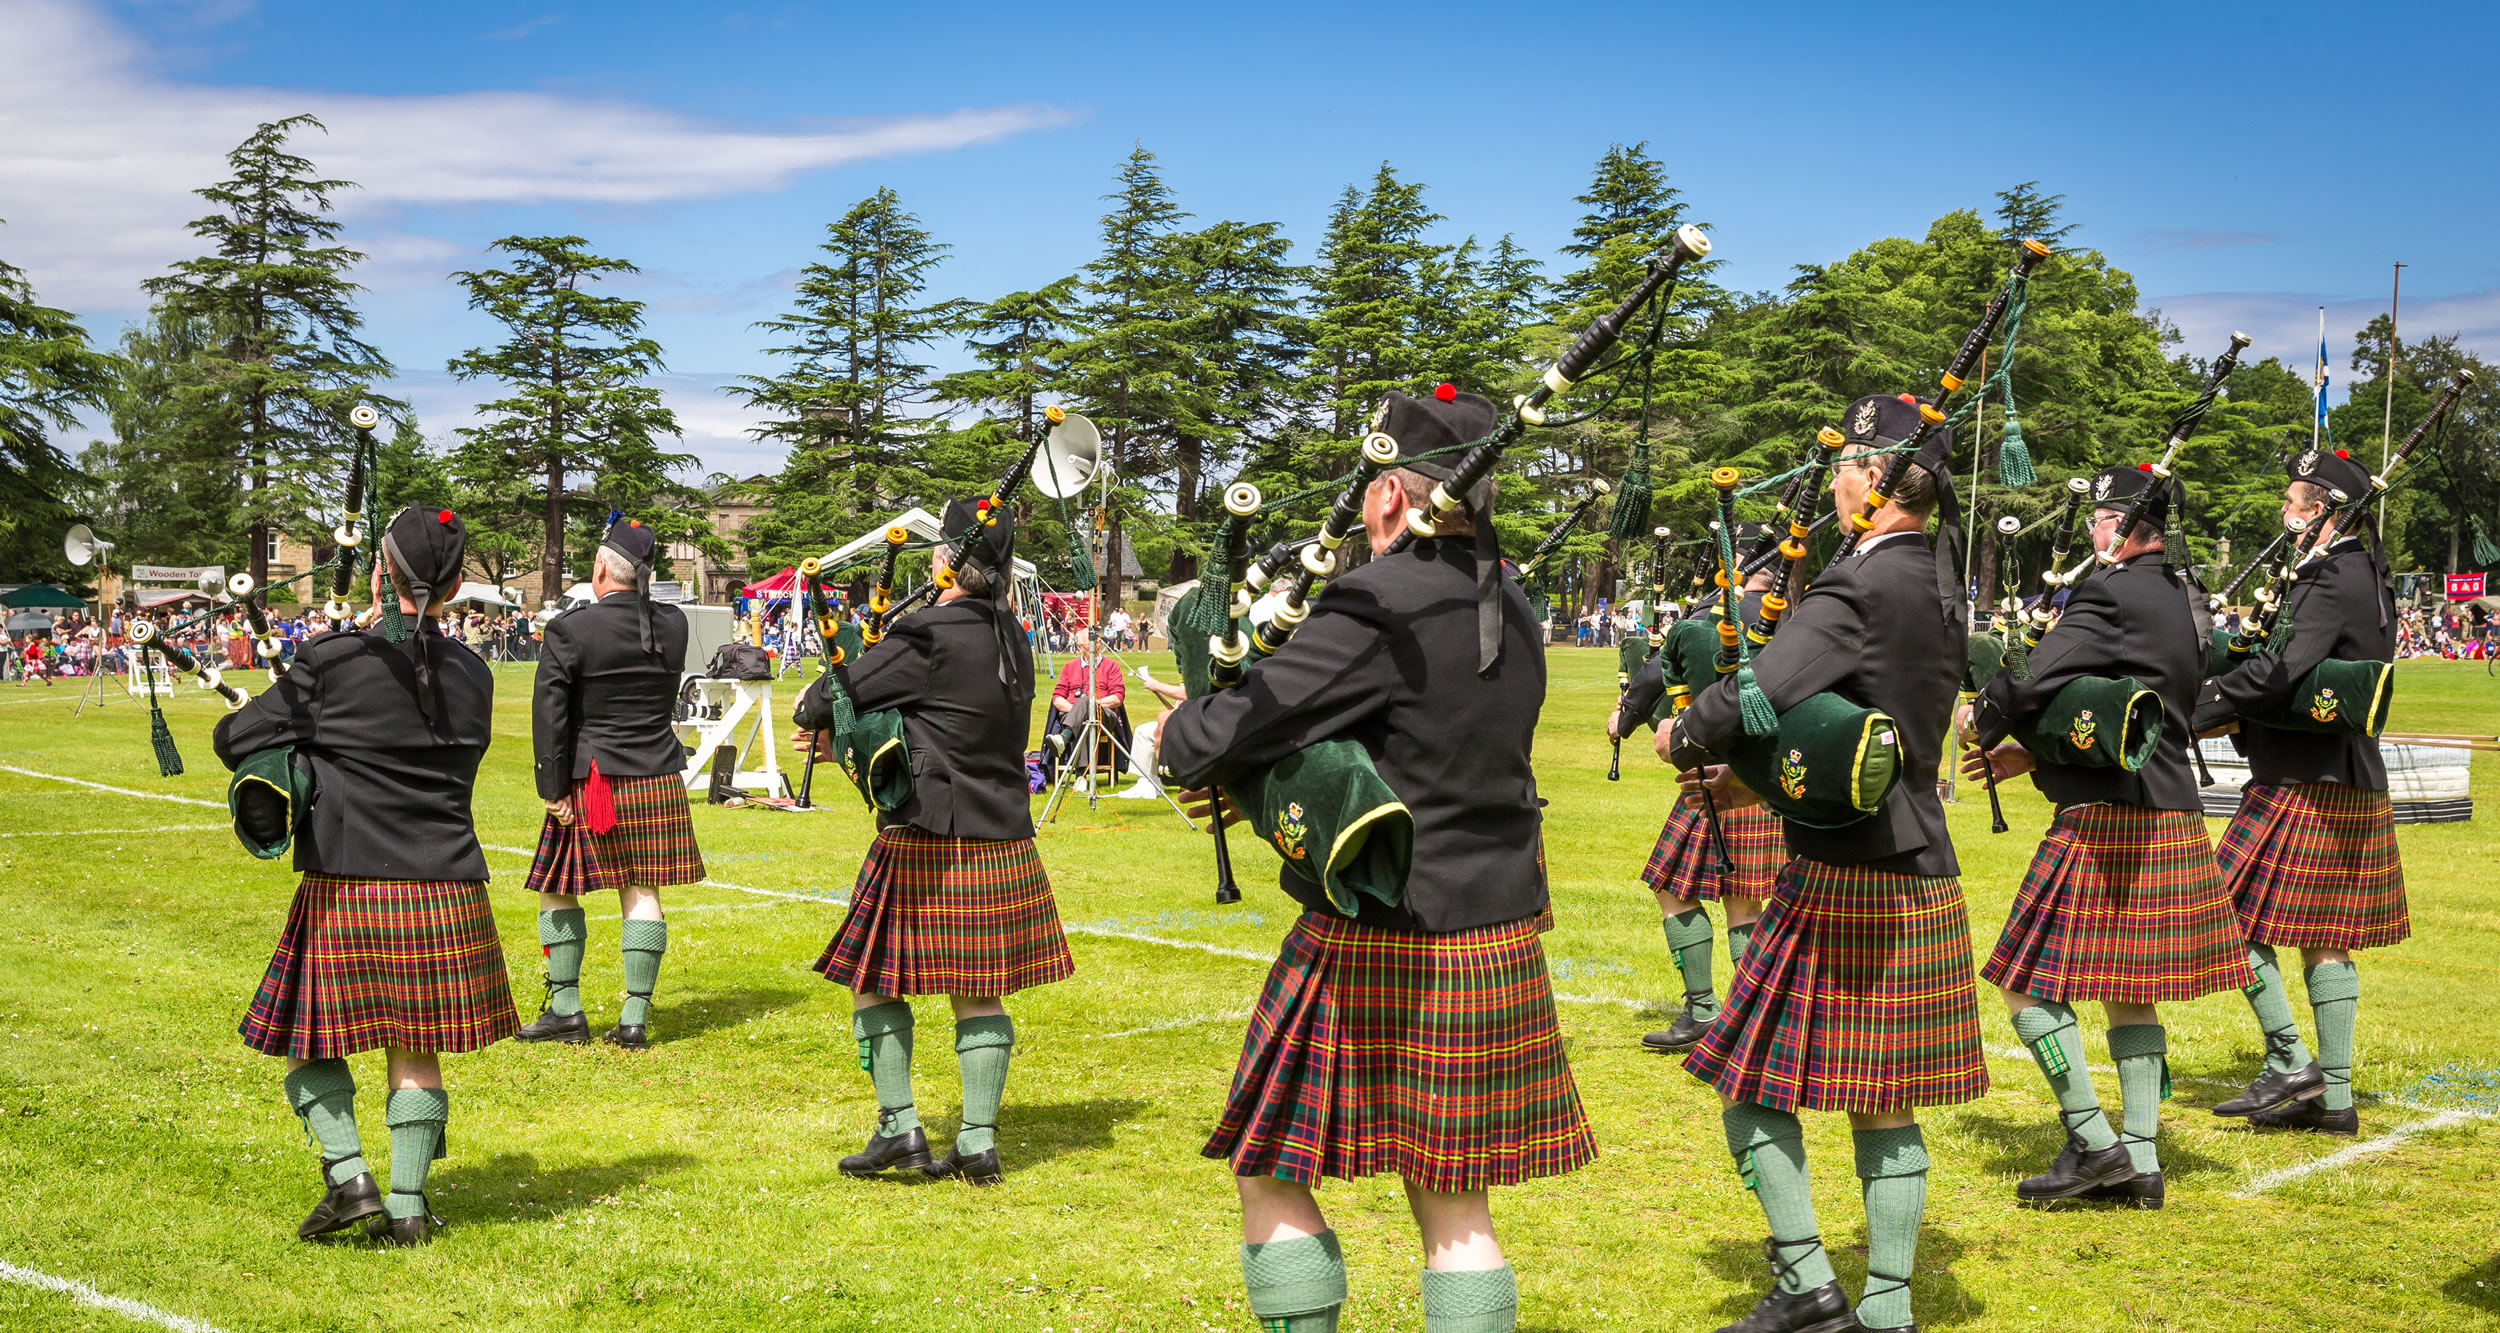 Loch Lomond Highland Games (July 2019)